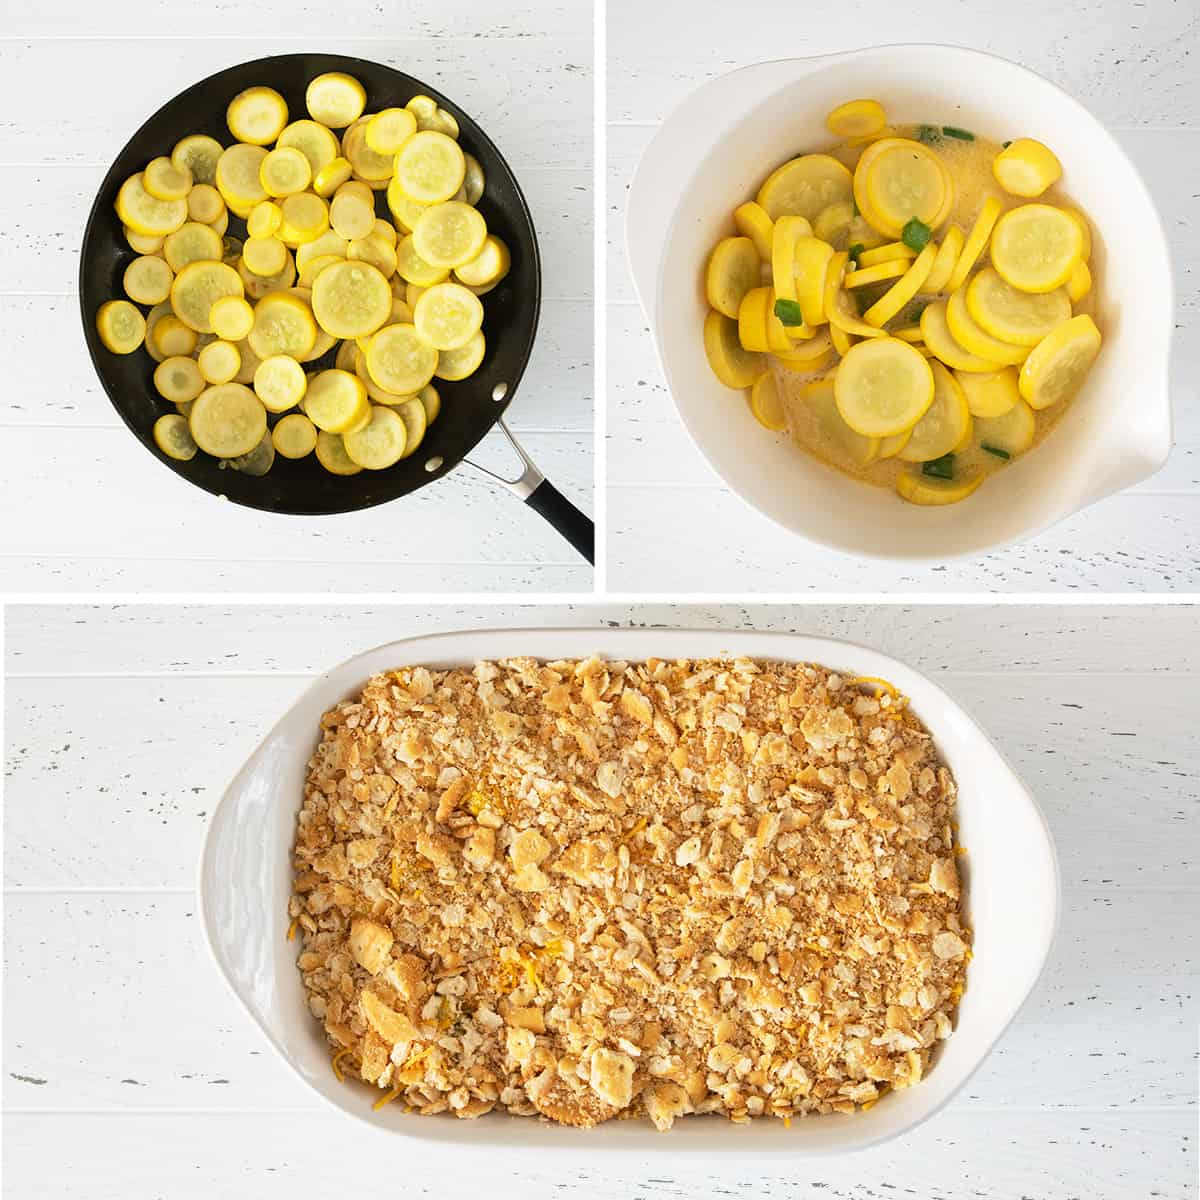 Steps for making squash casserole including cooking the squash, makingthe filling, and building